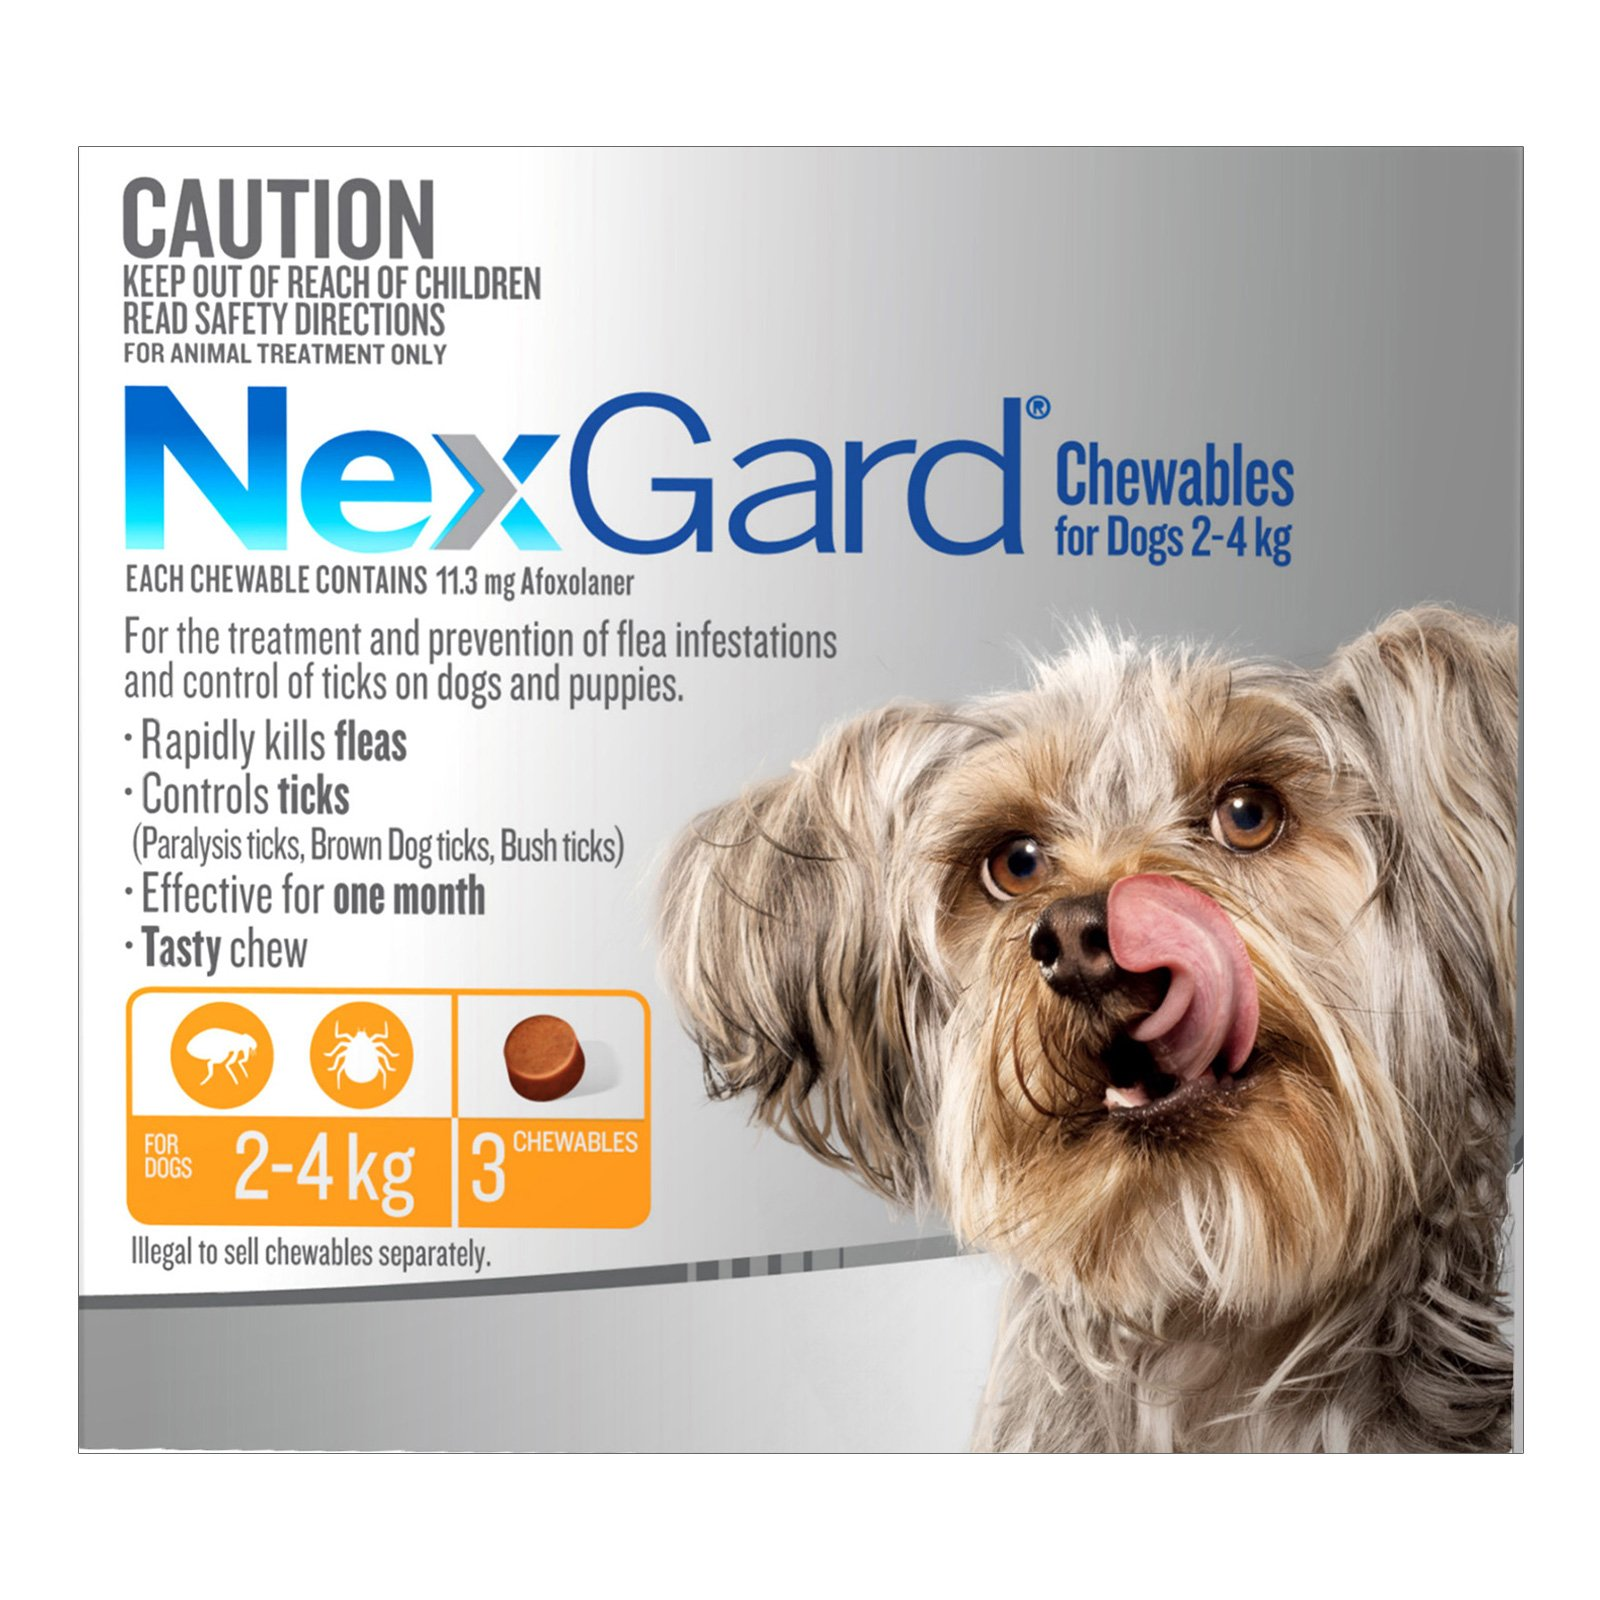 Nexgard Chewables For Very Small Dogs (2 - 4 Kg) Orange